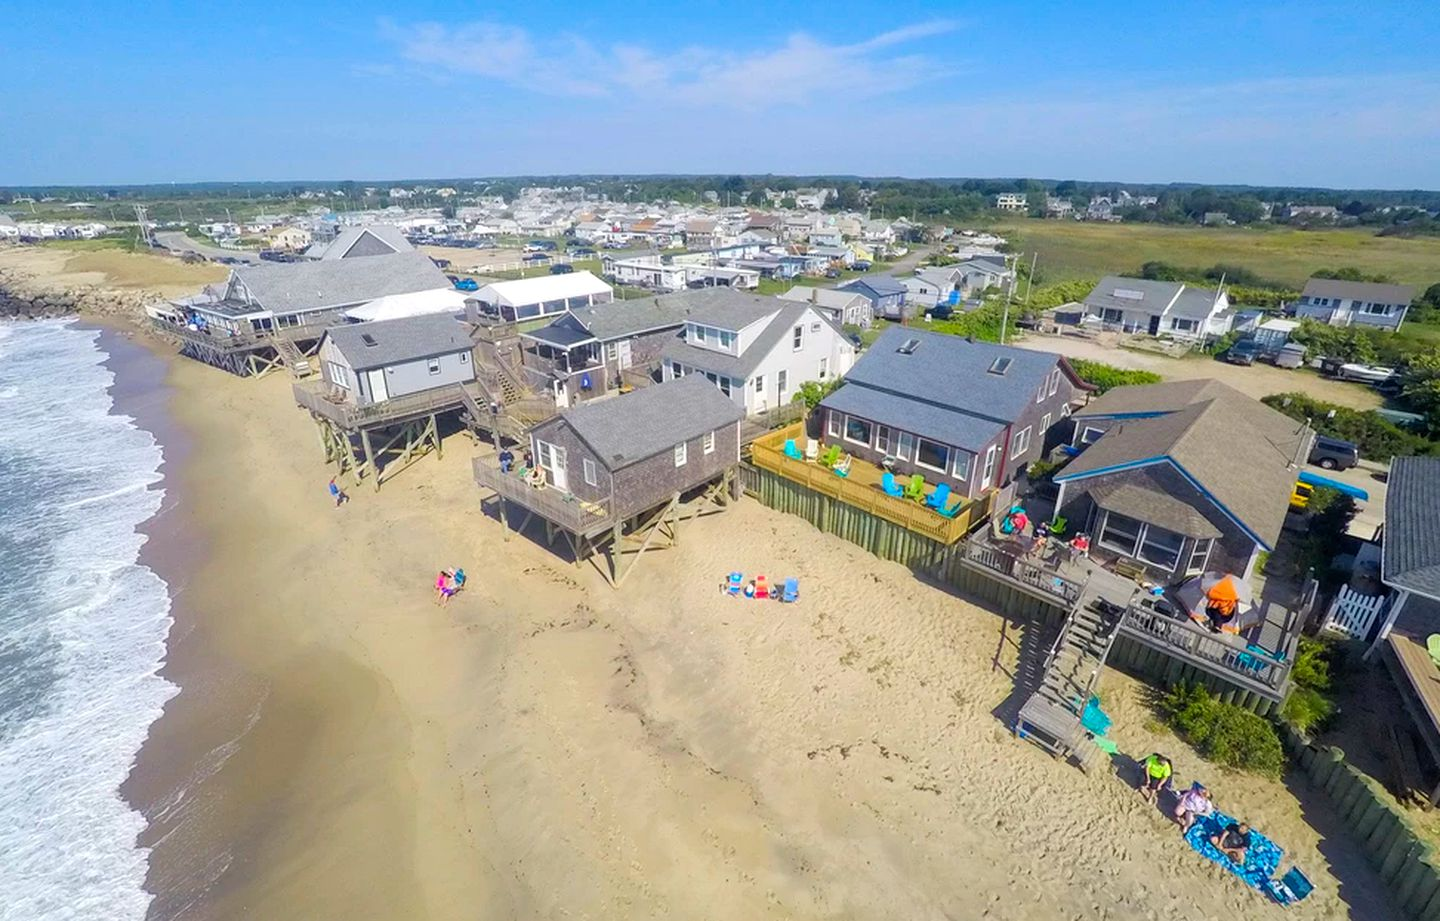 Beach Houses (South Kingstown, Rhode Island, United States)